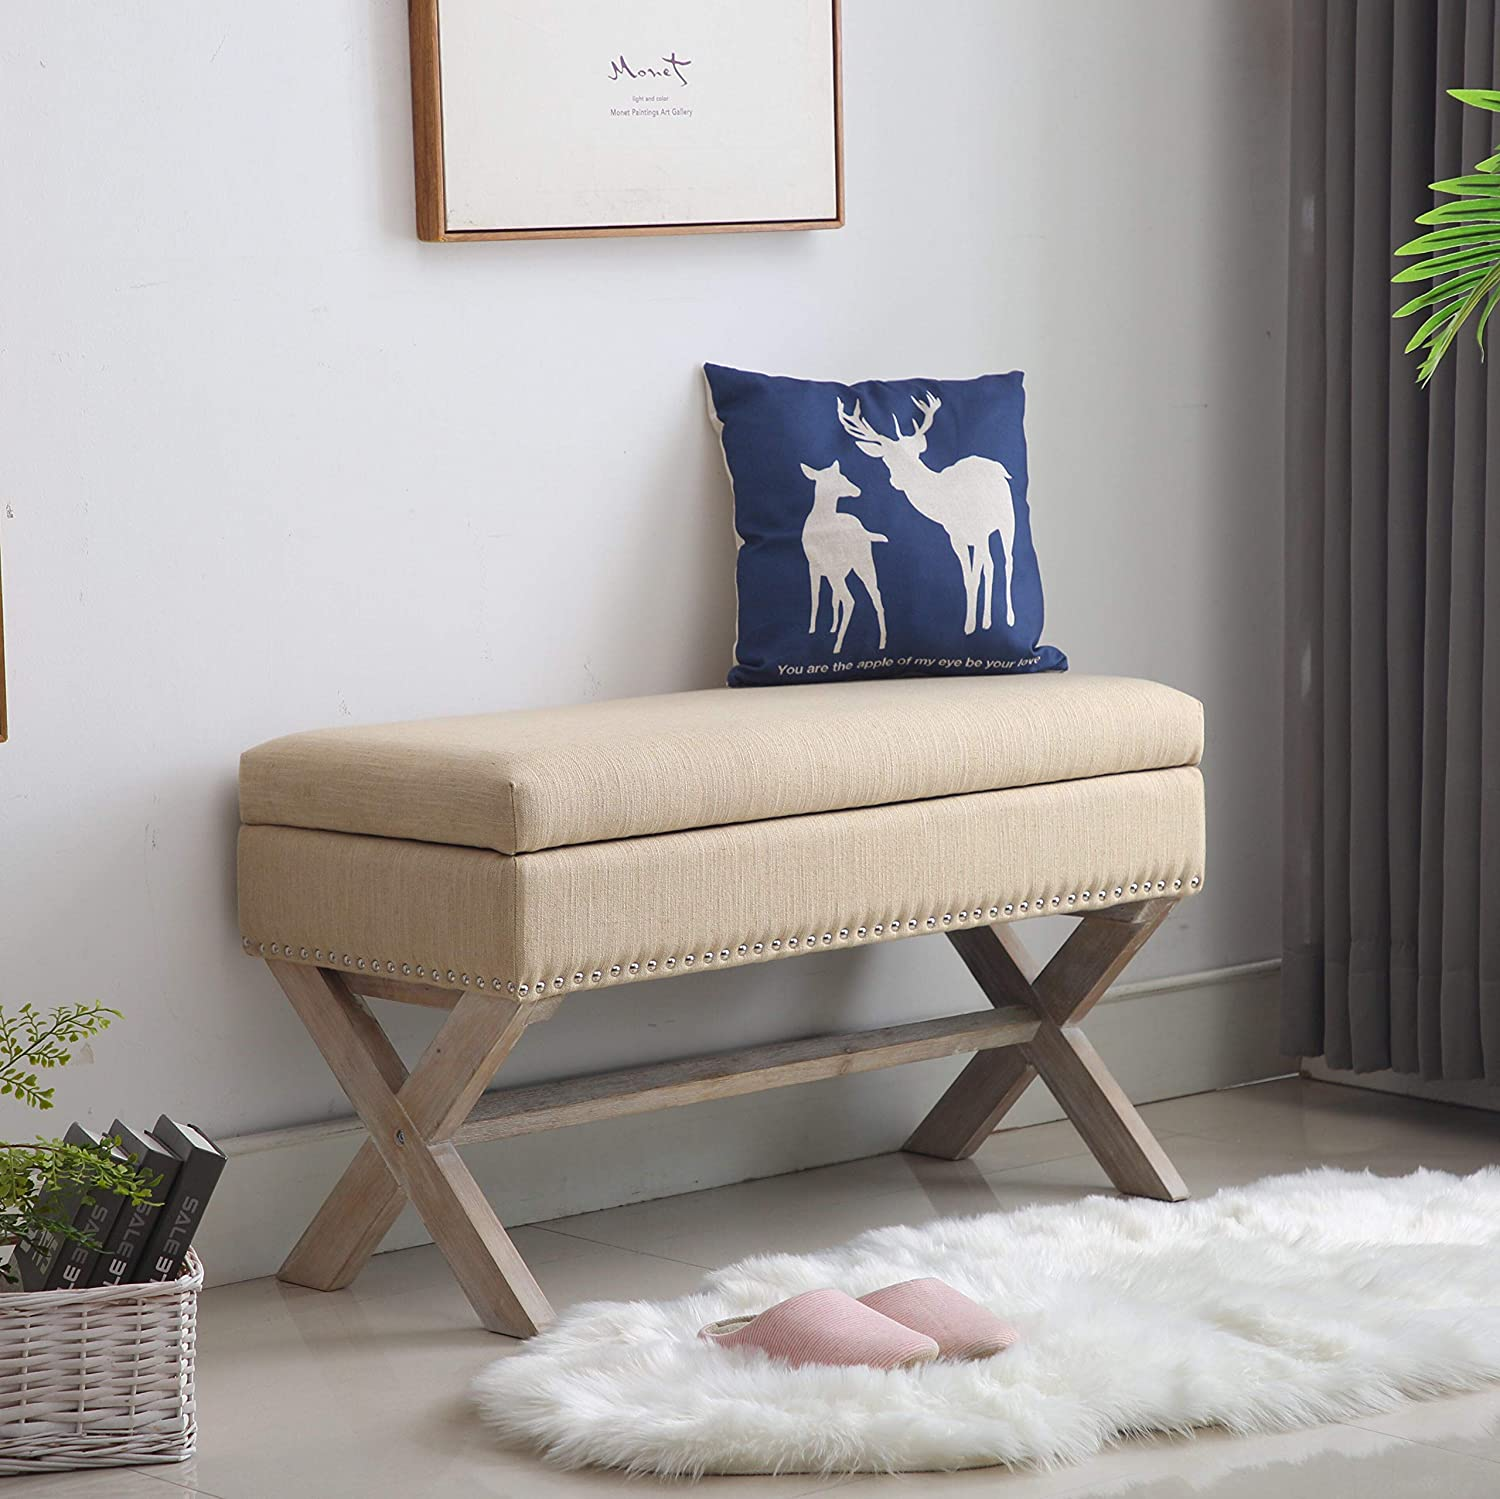 Upholstered Storage Benches, Fabric Bed Side Bench Ottoman with X